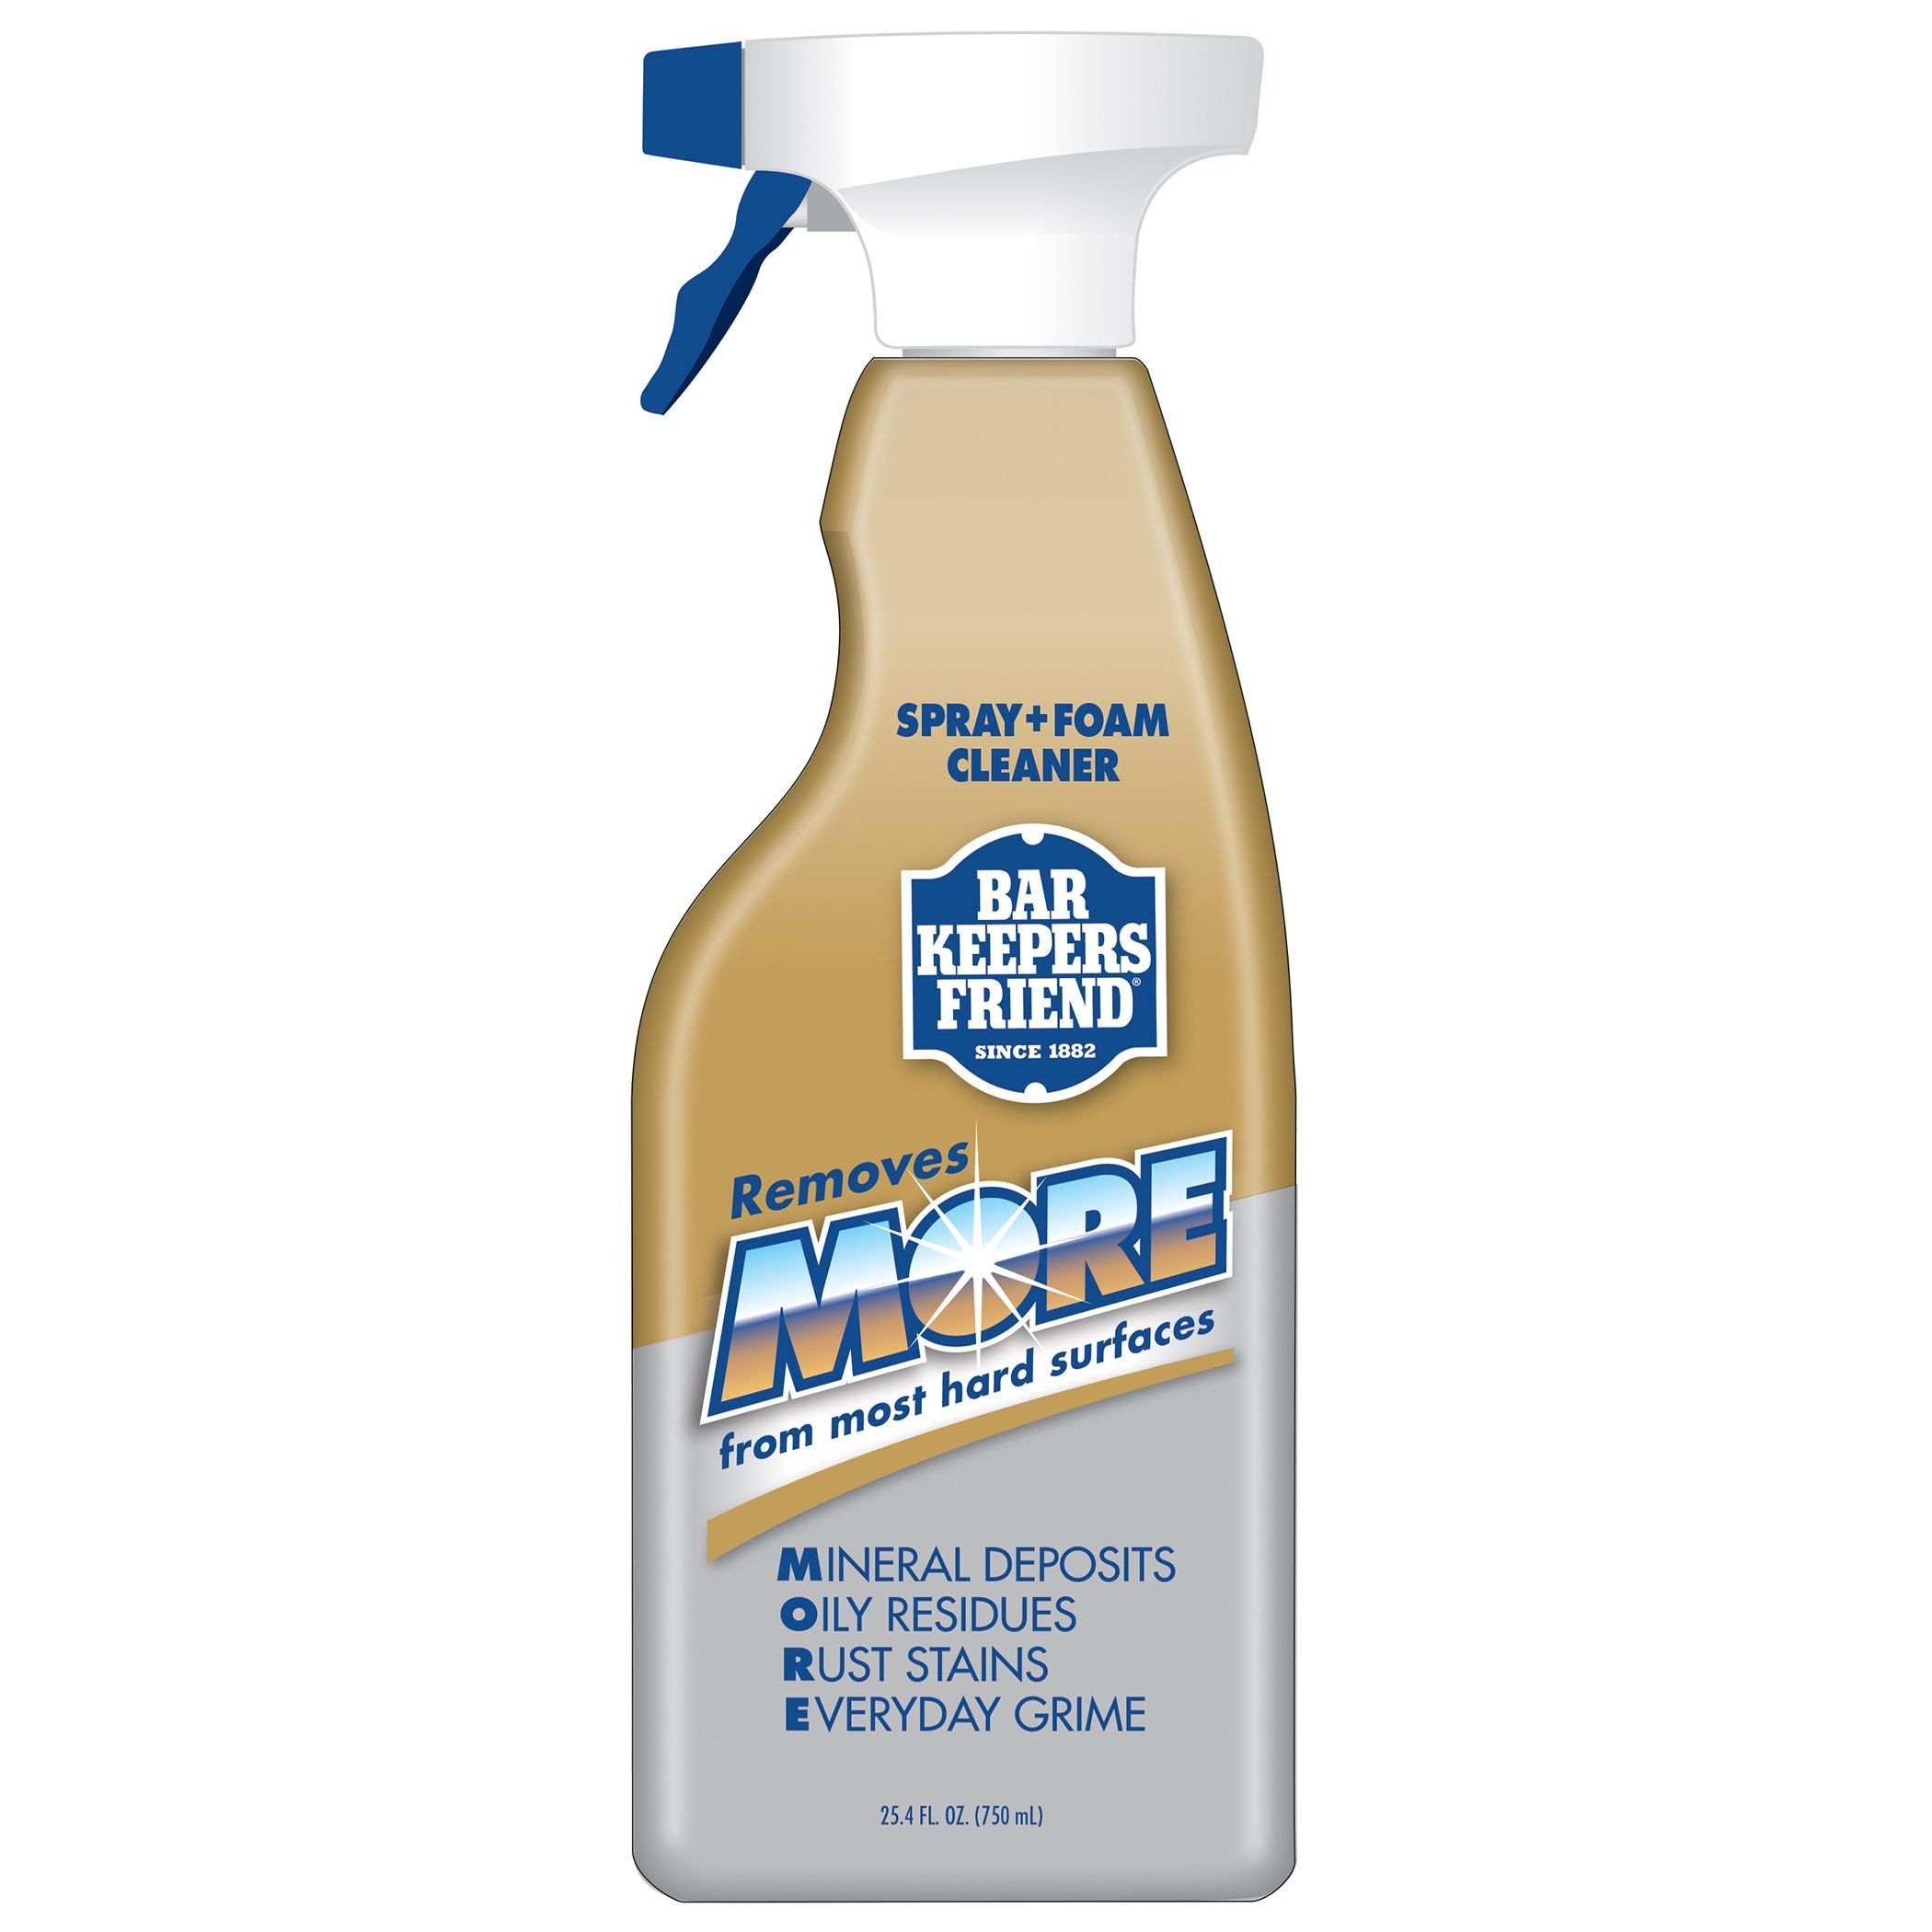 Bar Keepers Friend 11727 25 4 Oz More Spray Foam Cleaner Life  # Alfombras Y Muebles Power Espray